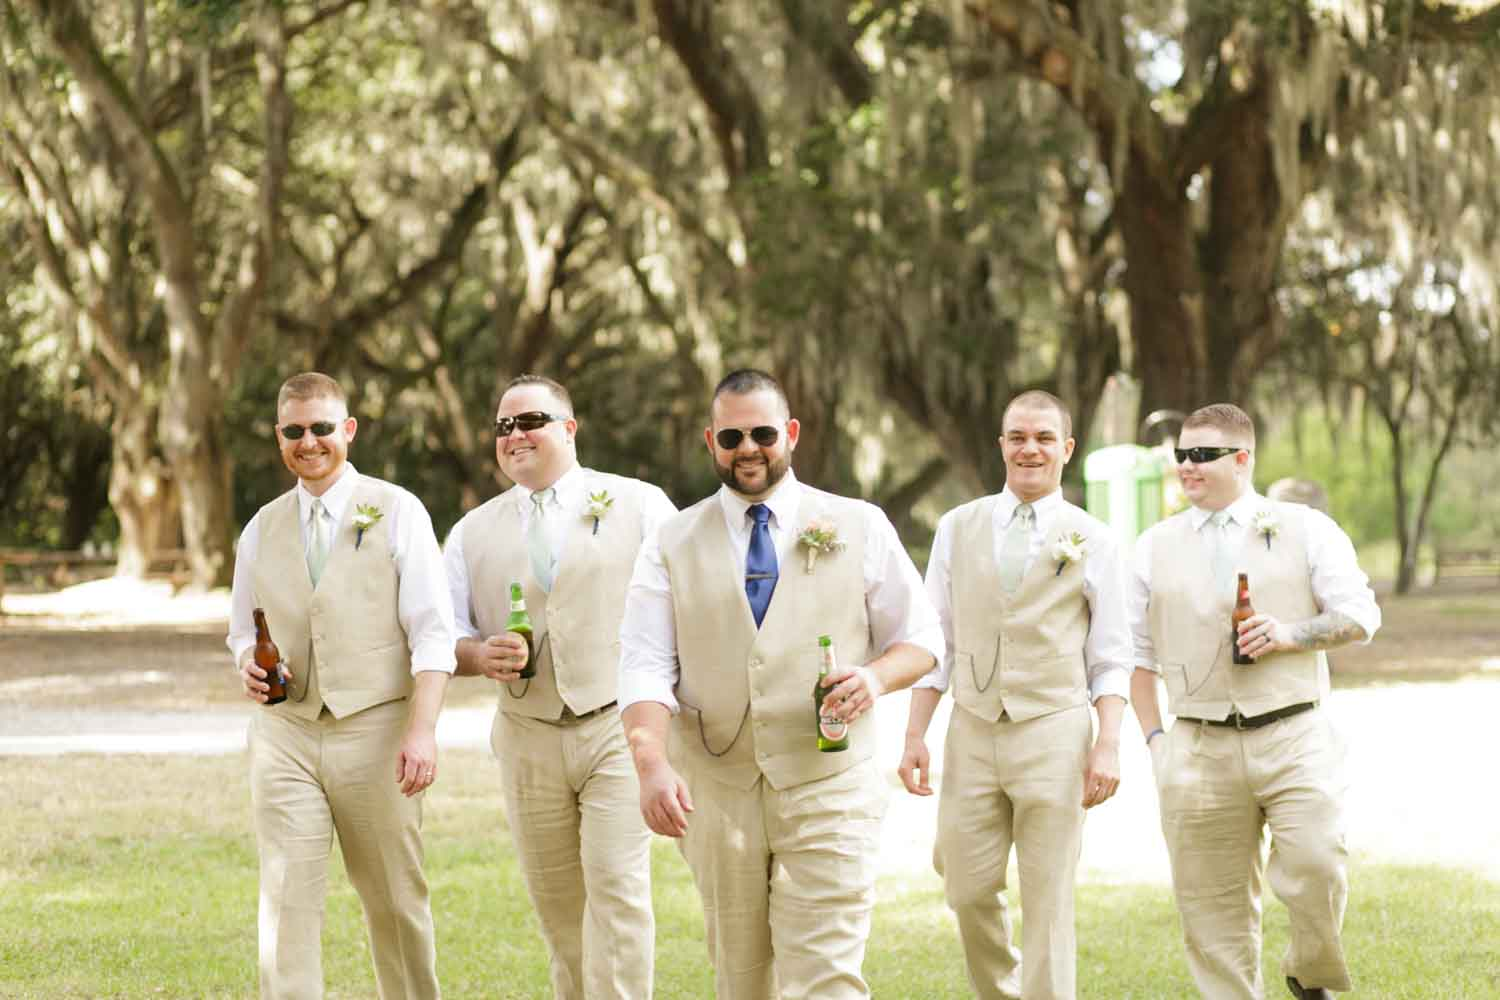 groomsmen wearing sunglasses and holding a beer walking to wedding